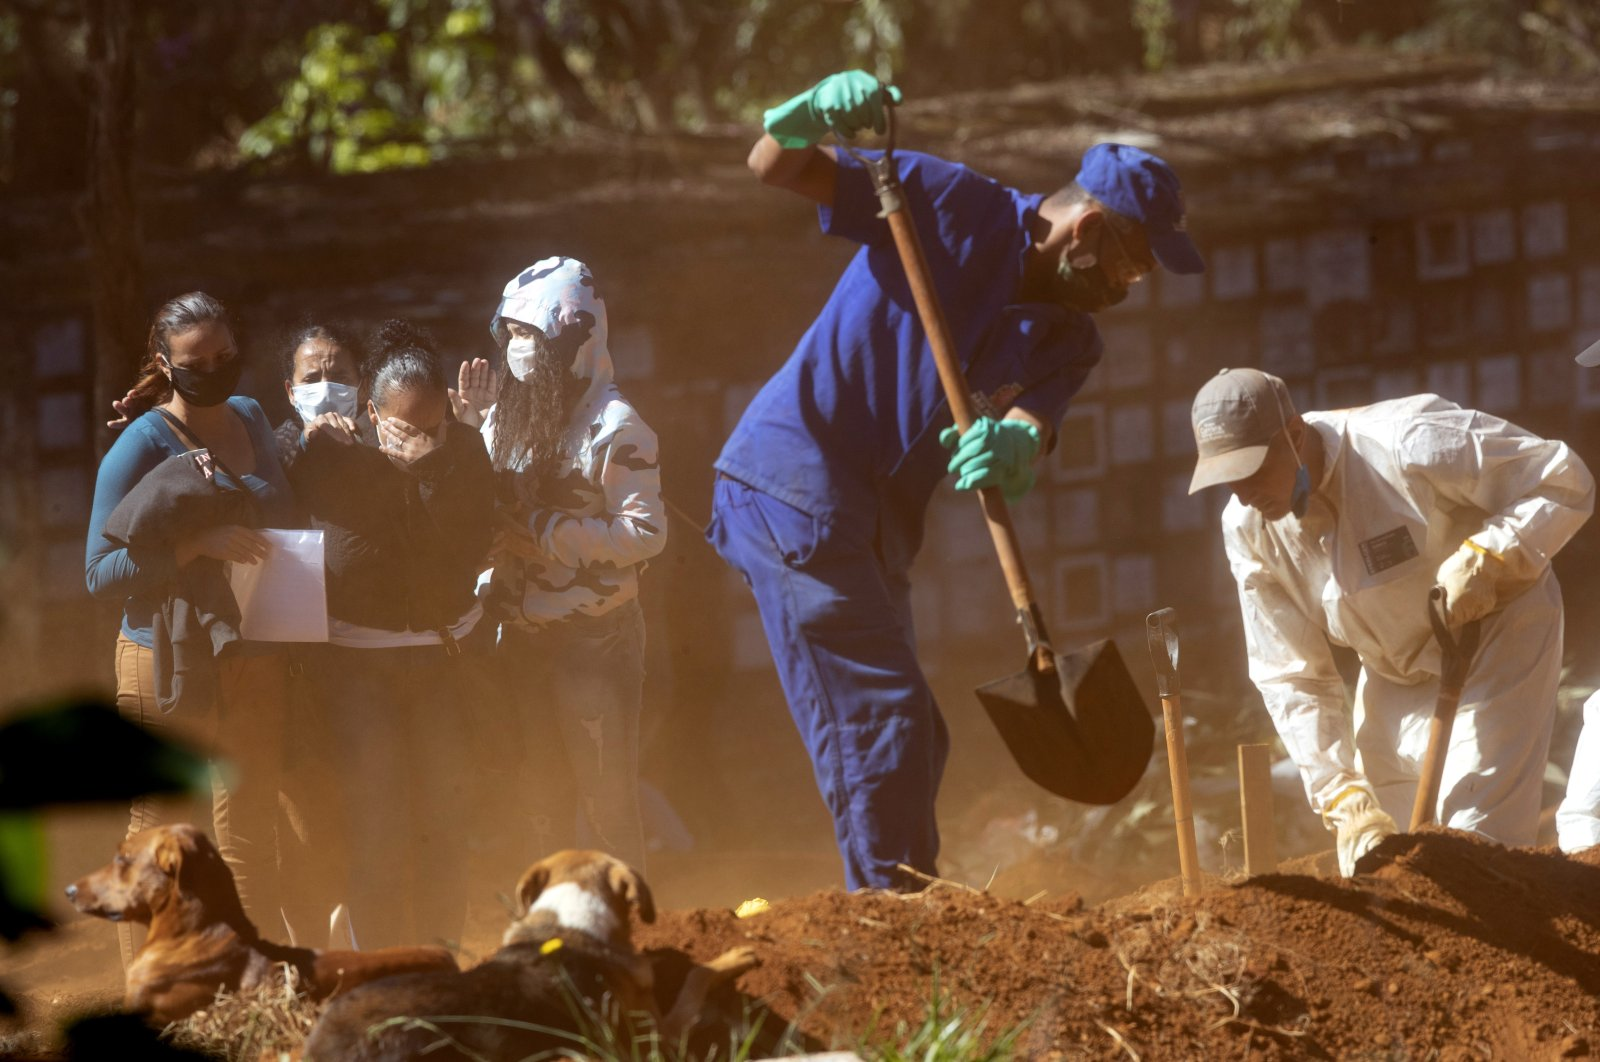 Relatives mourn as they watch cemetery workers shovel dirt over a coffin, at the Vila Formosa cemetery in Sao Paulo, Brazil, Thursday, May 28, 2020. (AP Photo/Andre Penner)